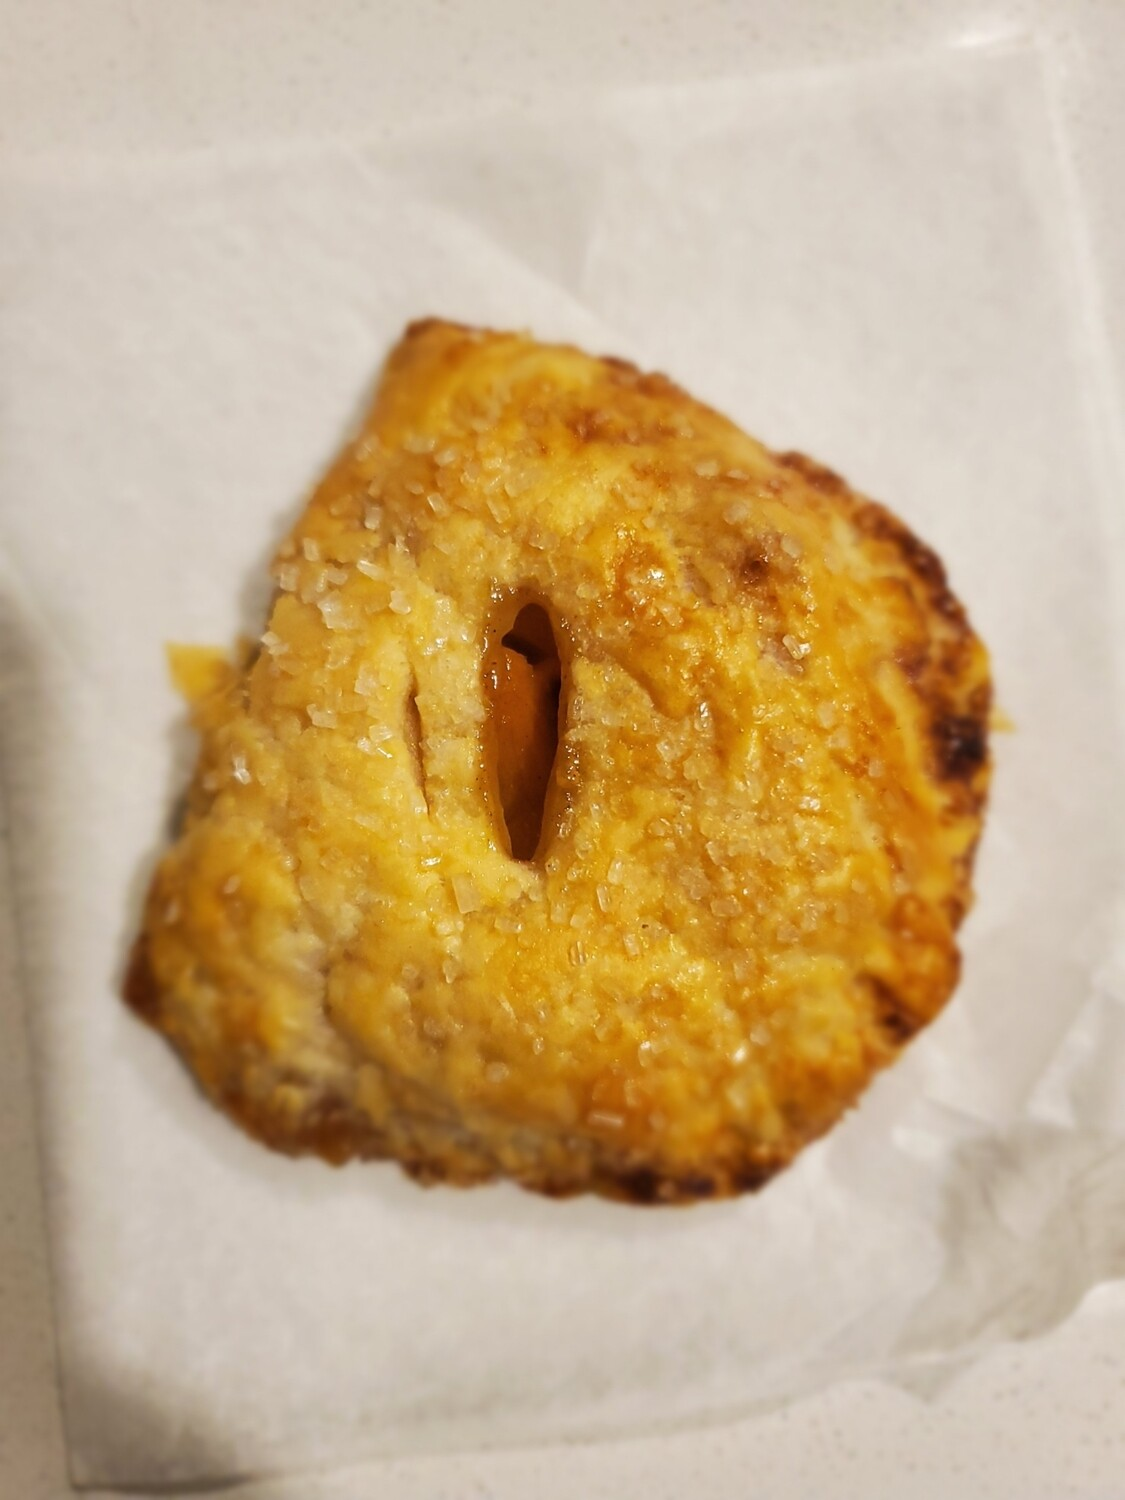 2 Gingered Pear Turnovers